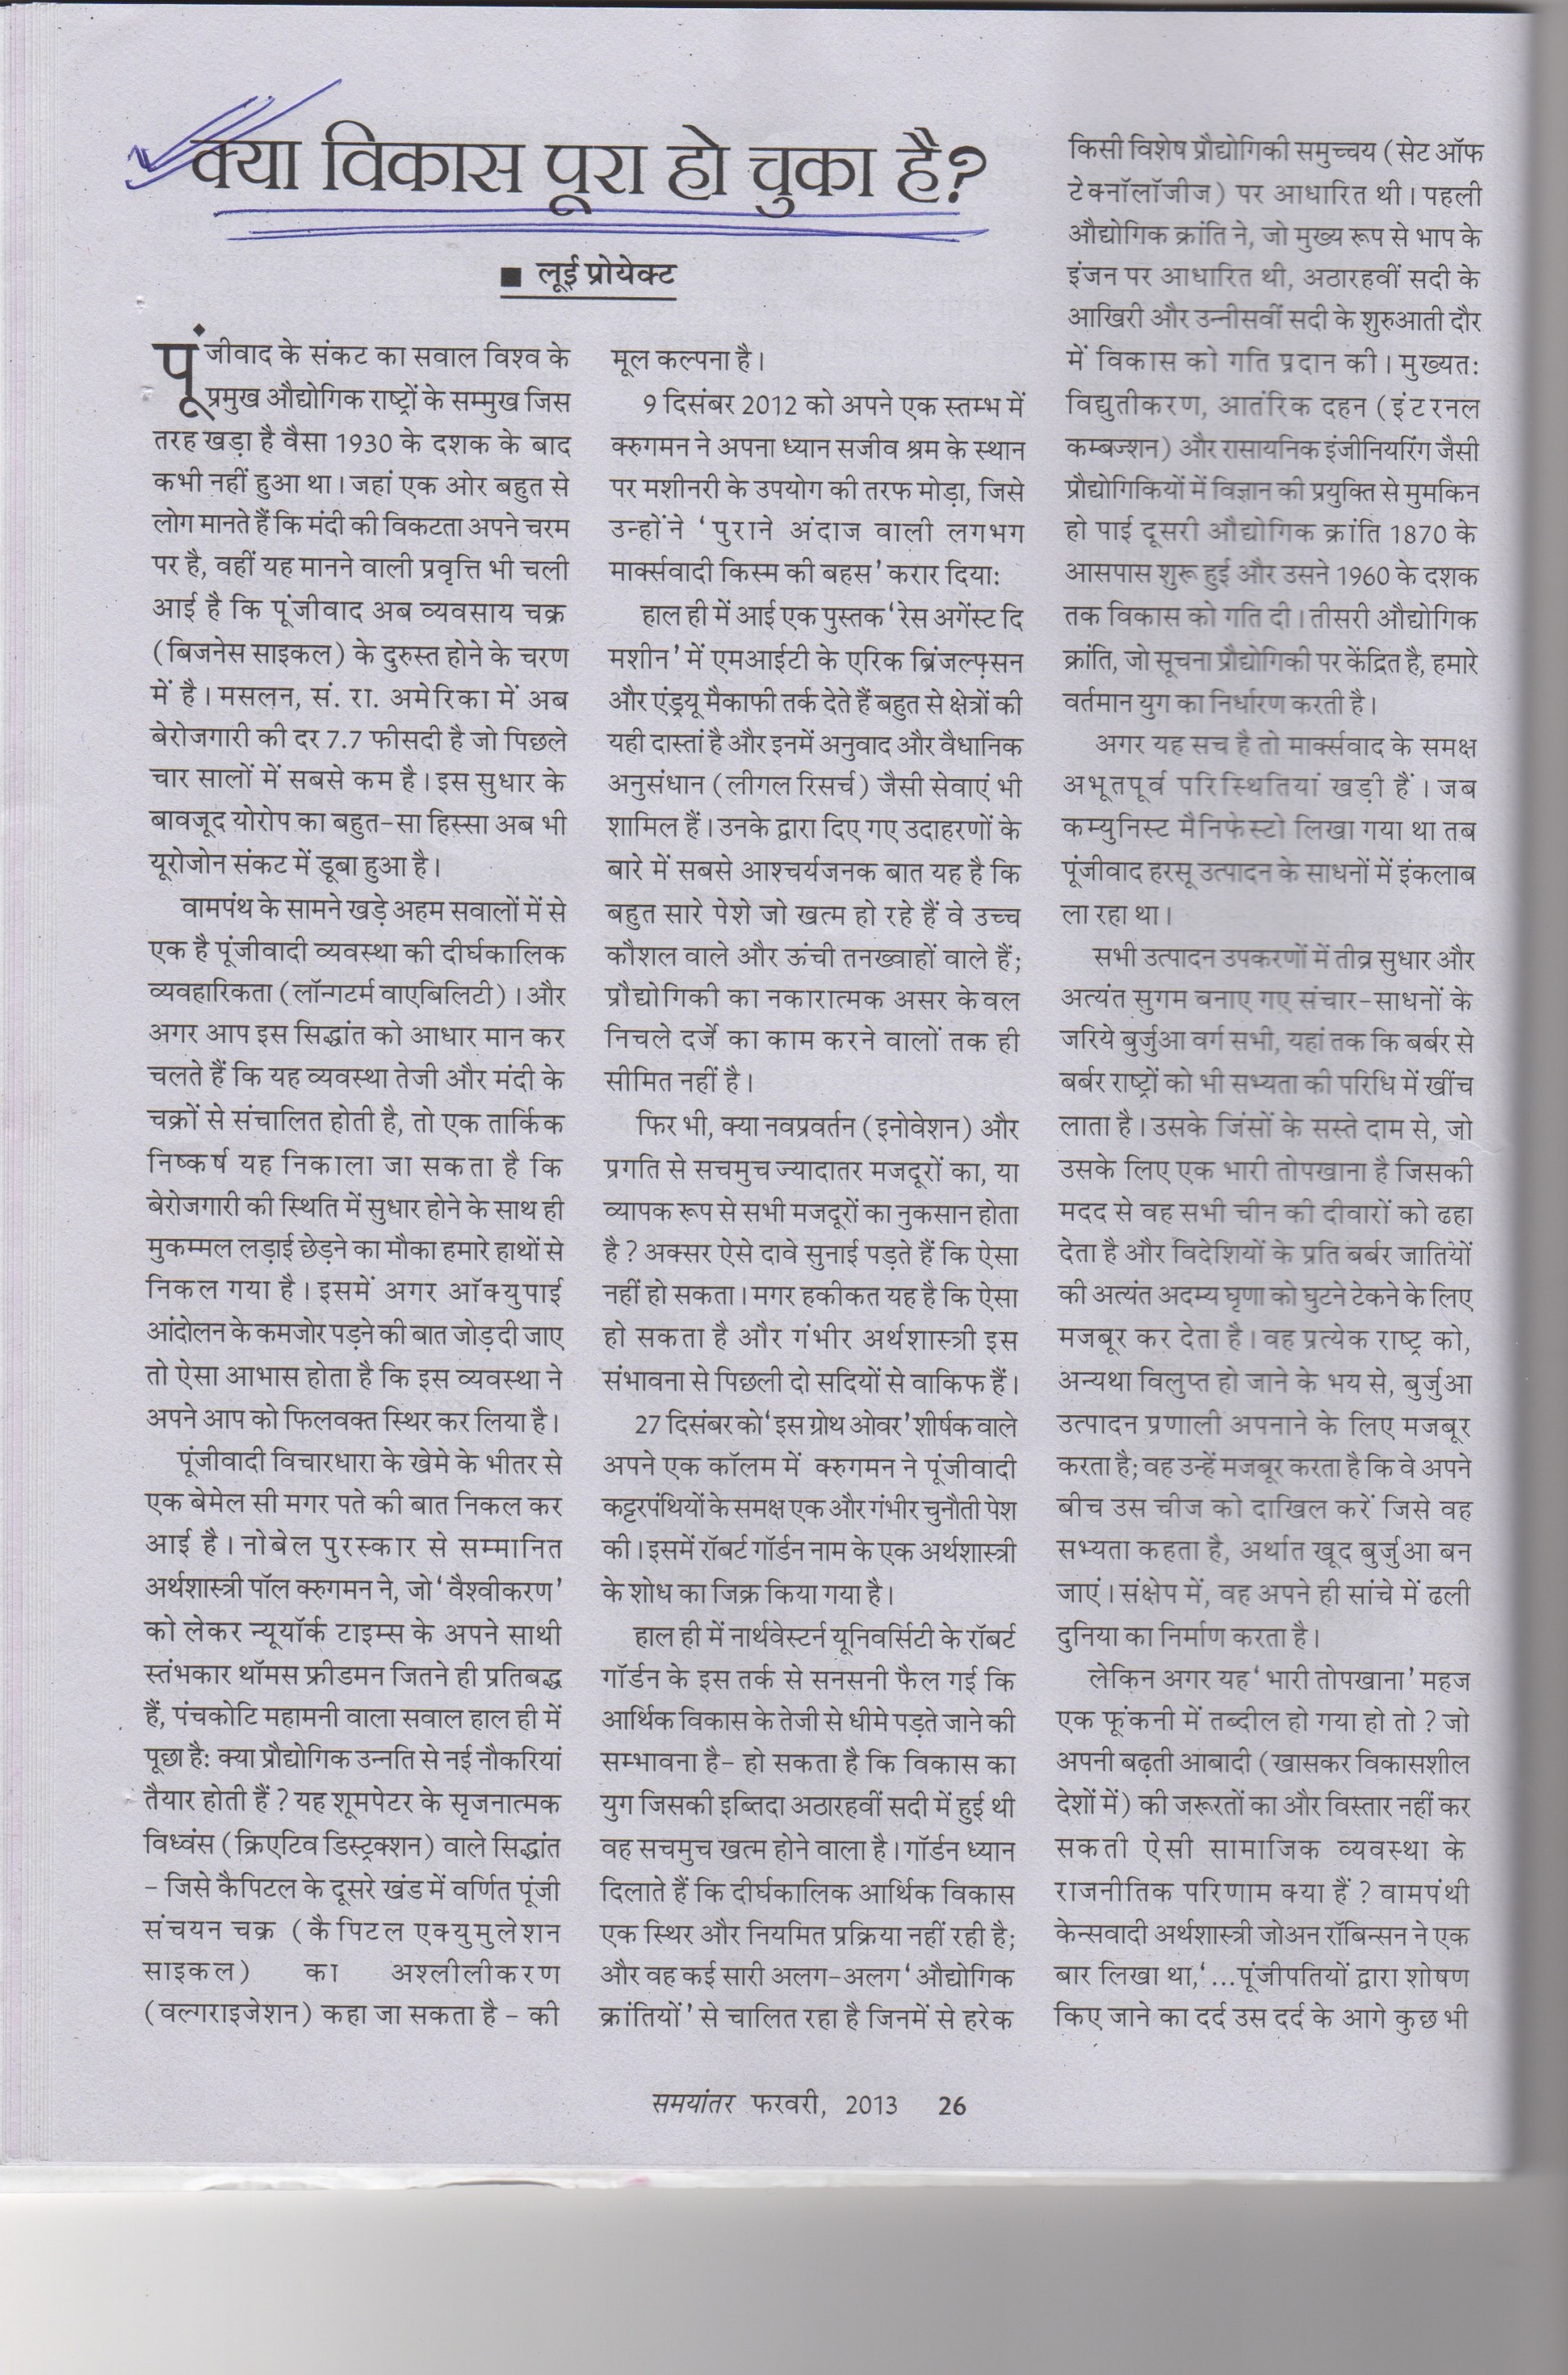 013 Why Is It Important To Vote Essay Contest Scan Top 1920